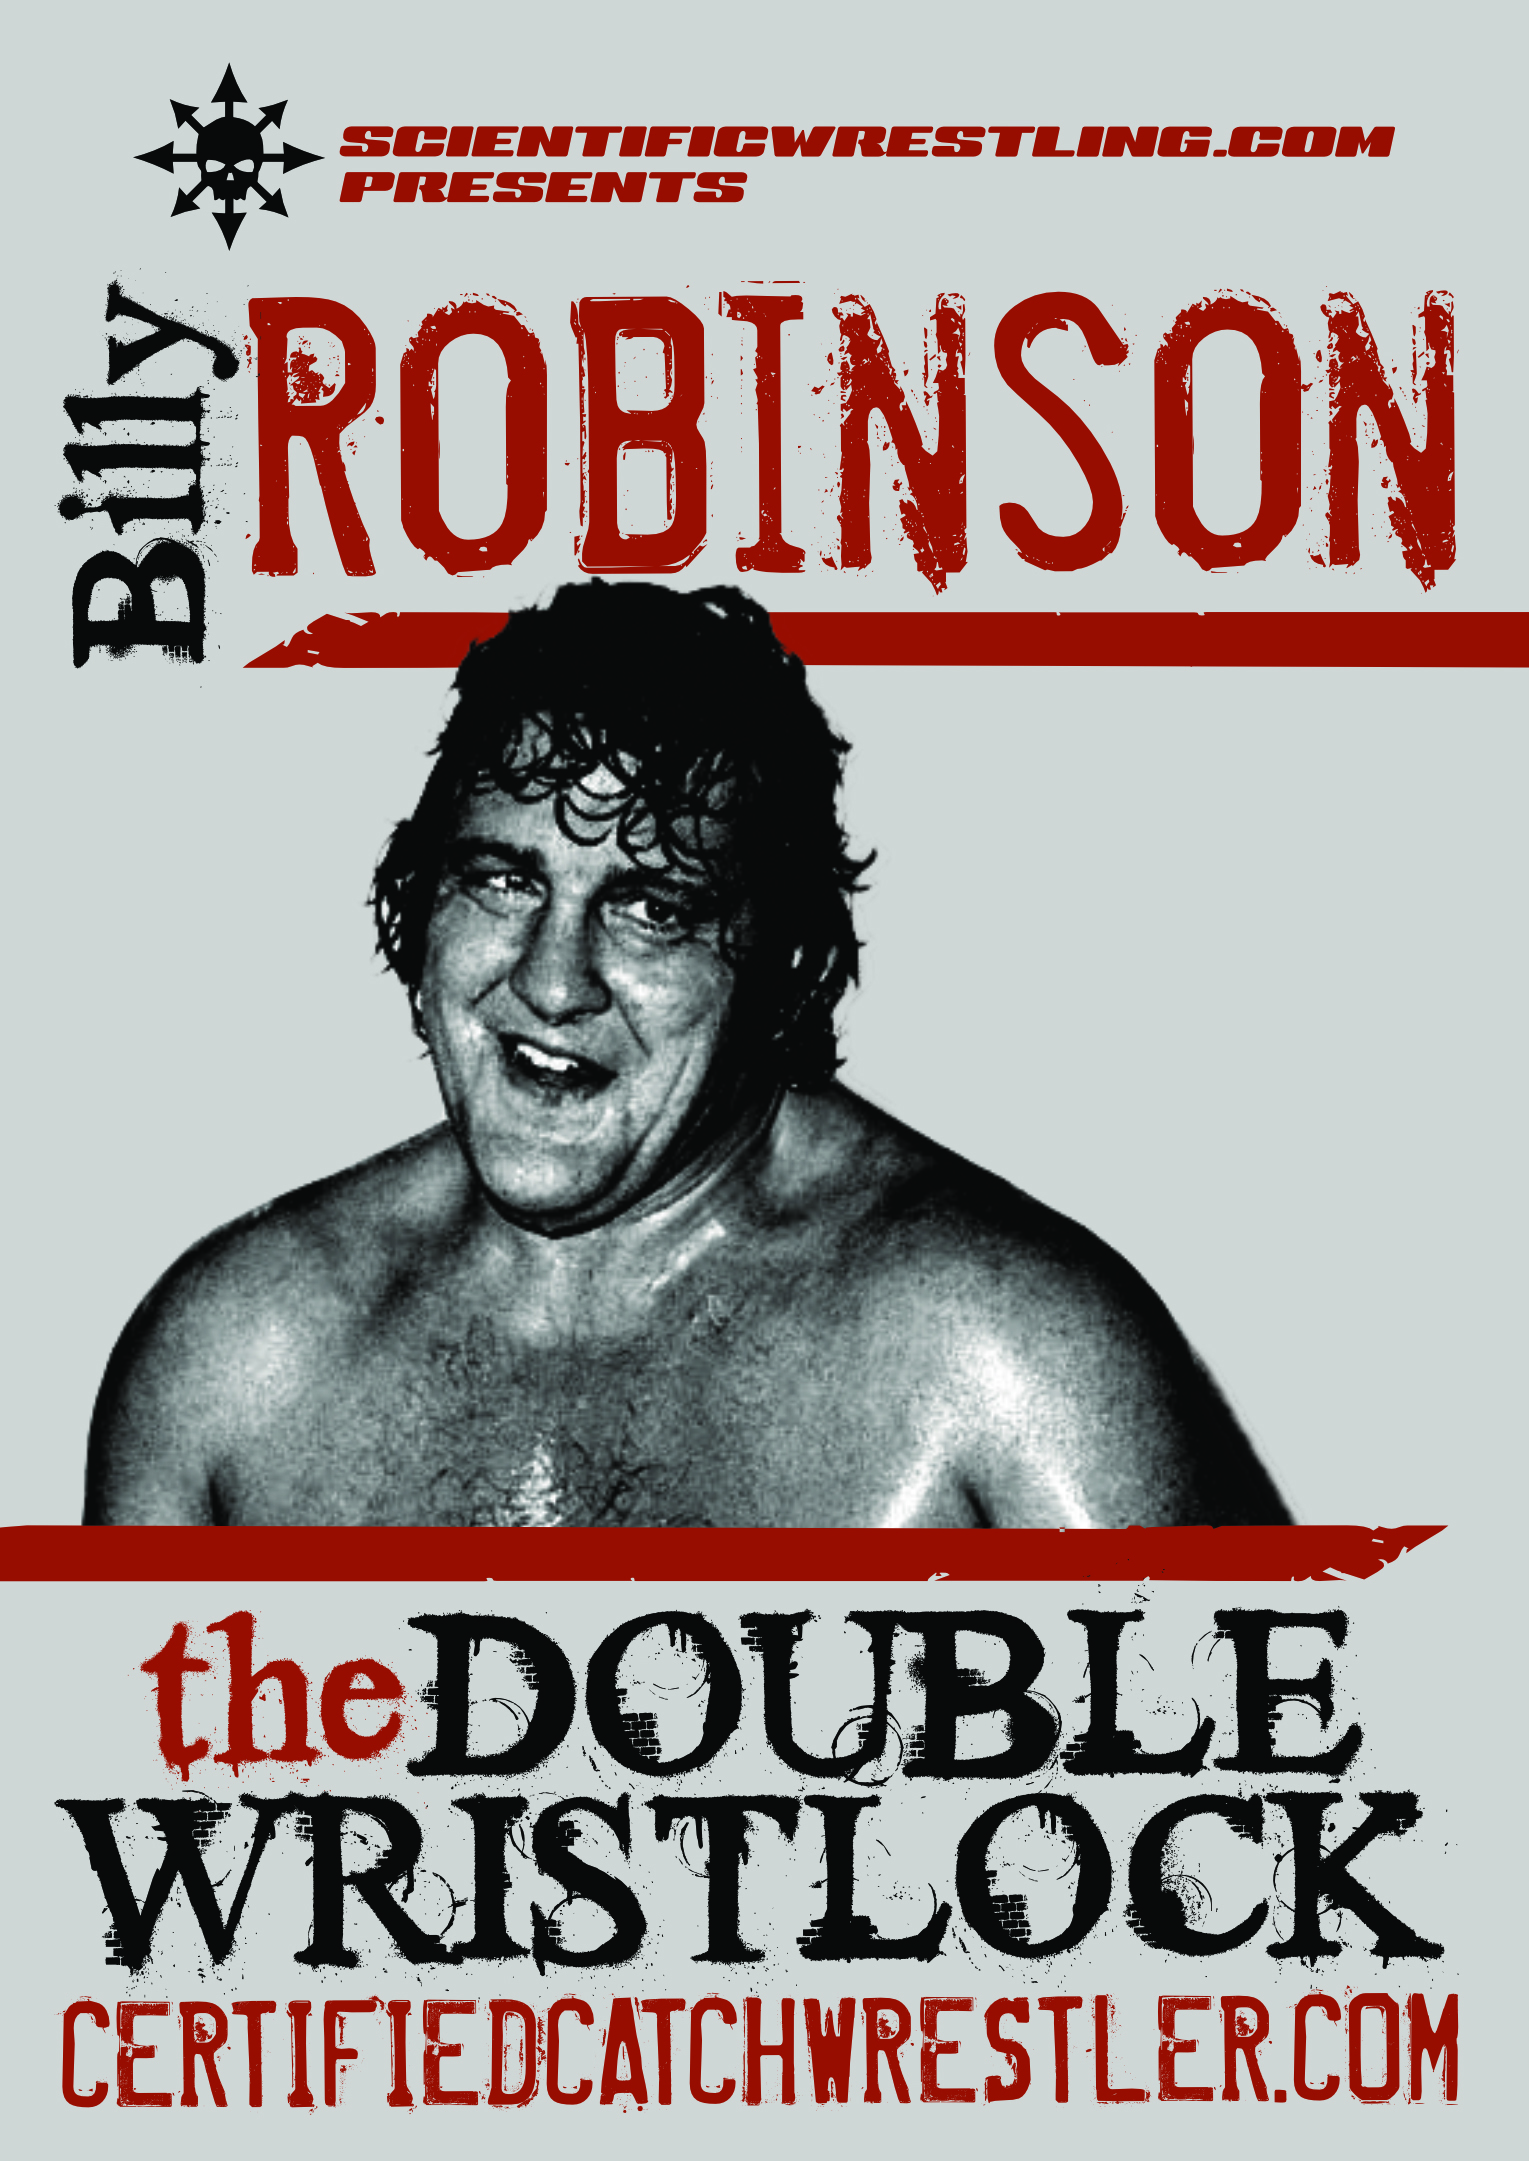 The Double Wrist Lock DVD starring Billy Robinson